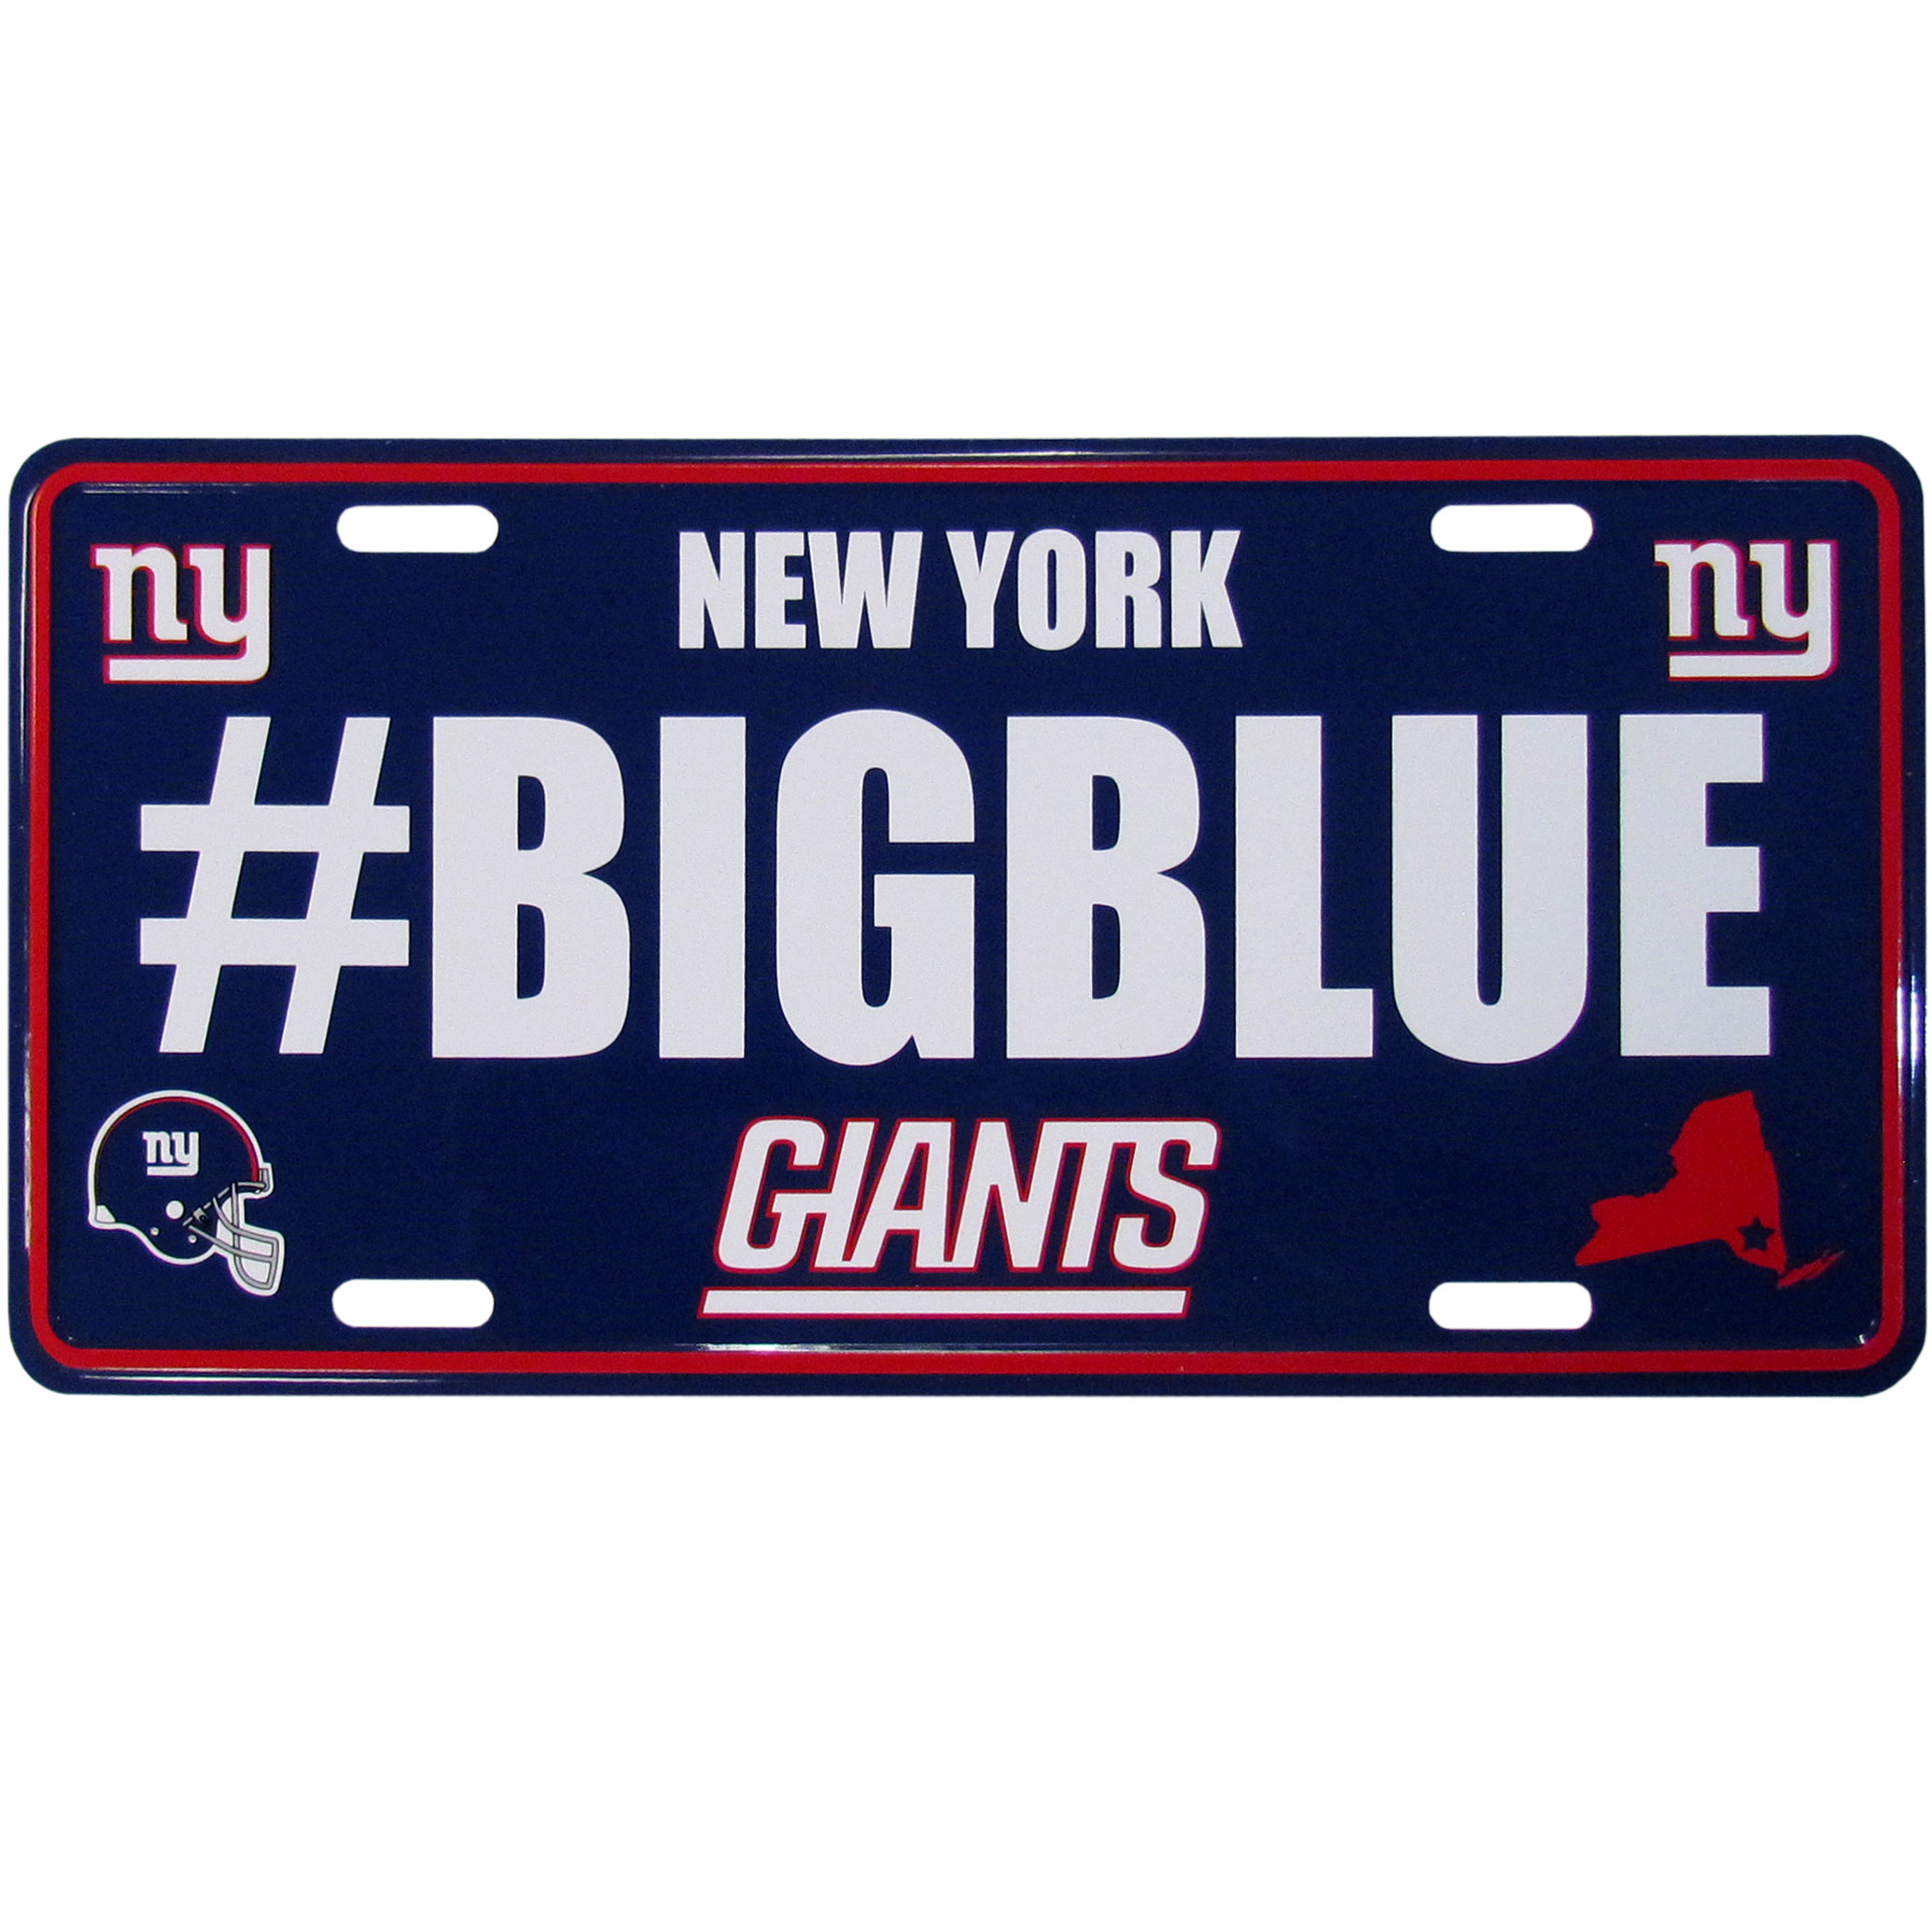 New York Giants Hashtag License Plate - It's a hashtag world! Celebrate the New York Giants with this stamped aluminum license plate with the most popular team hashtag! This bright license plate will look great on your vehicle or mounted in your fan cave.